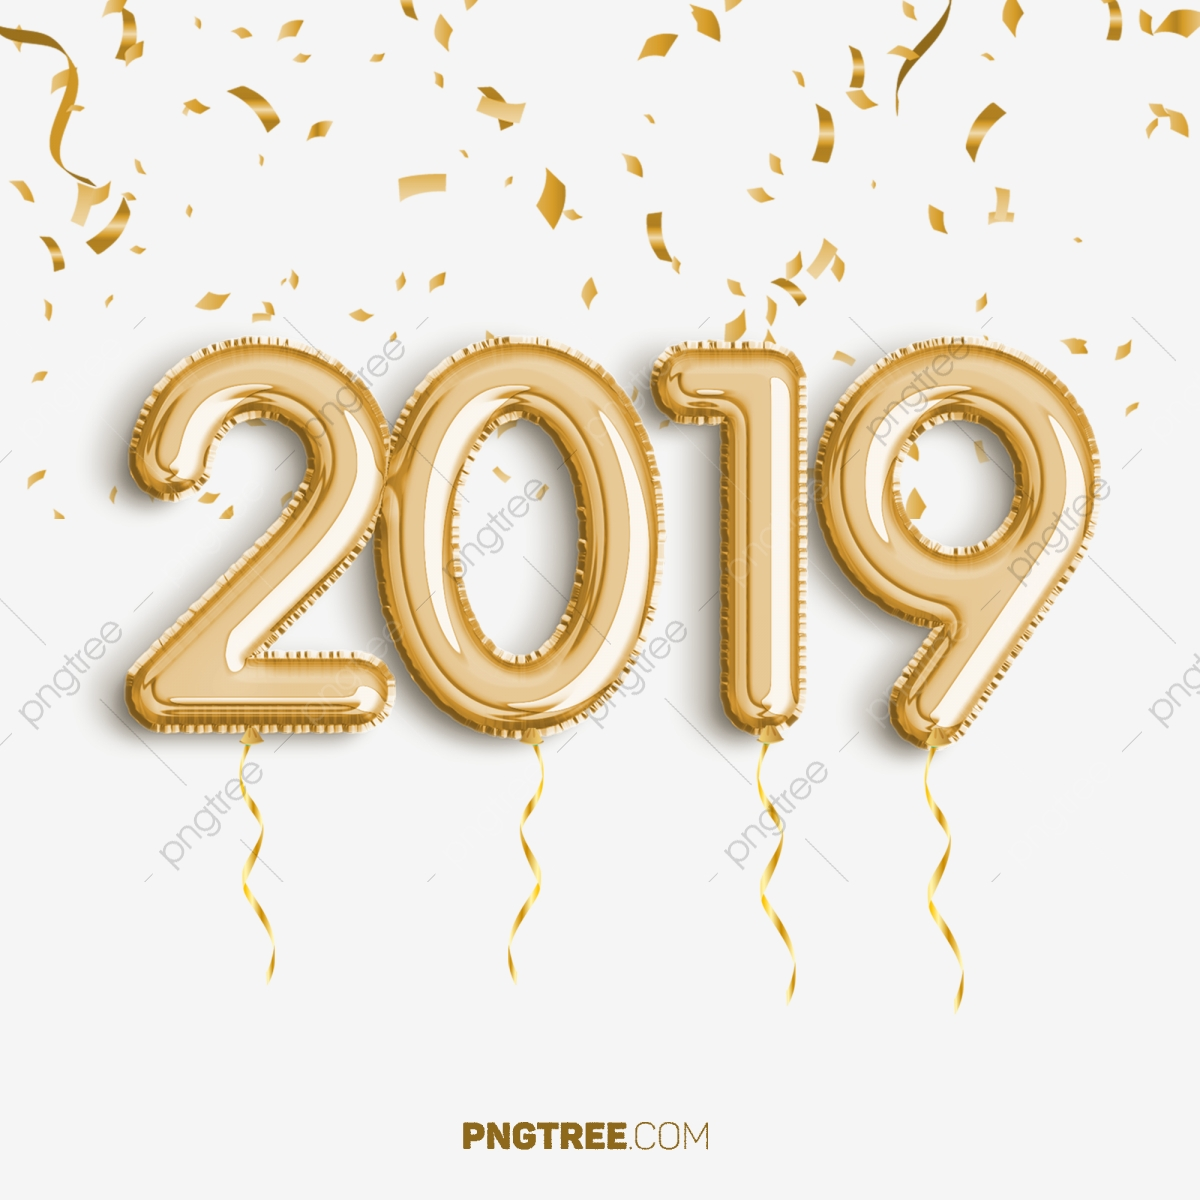 2019 Png Images Vector And Psd Files Free Download On Pngtree Transparent png images, graphics or psd files. https pngtree com freepng 2019 golden balloon celebrate 3654480 html